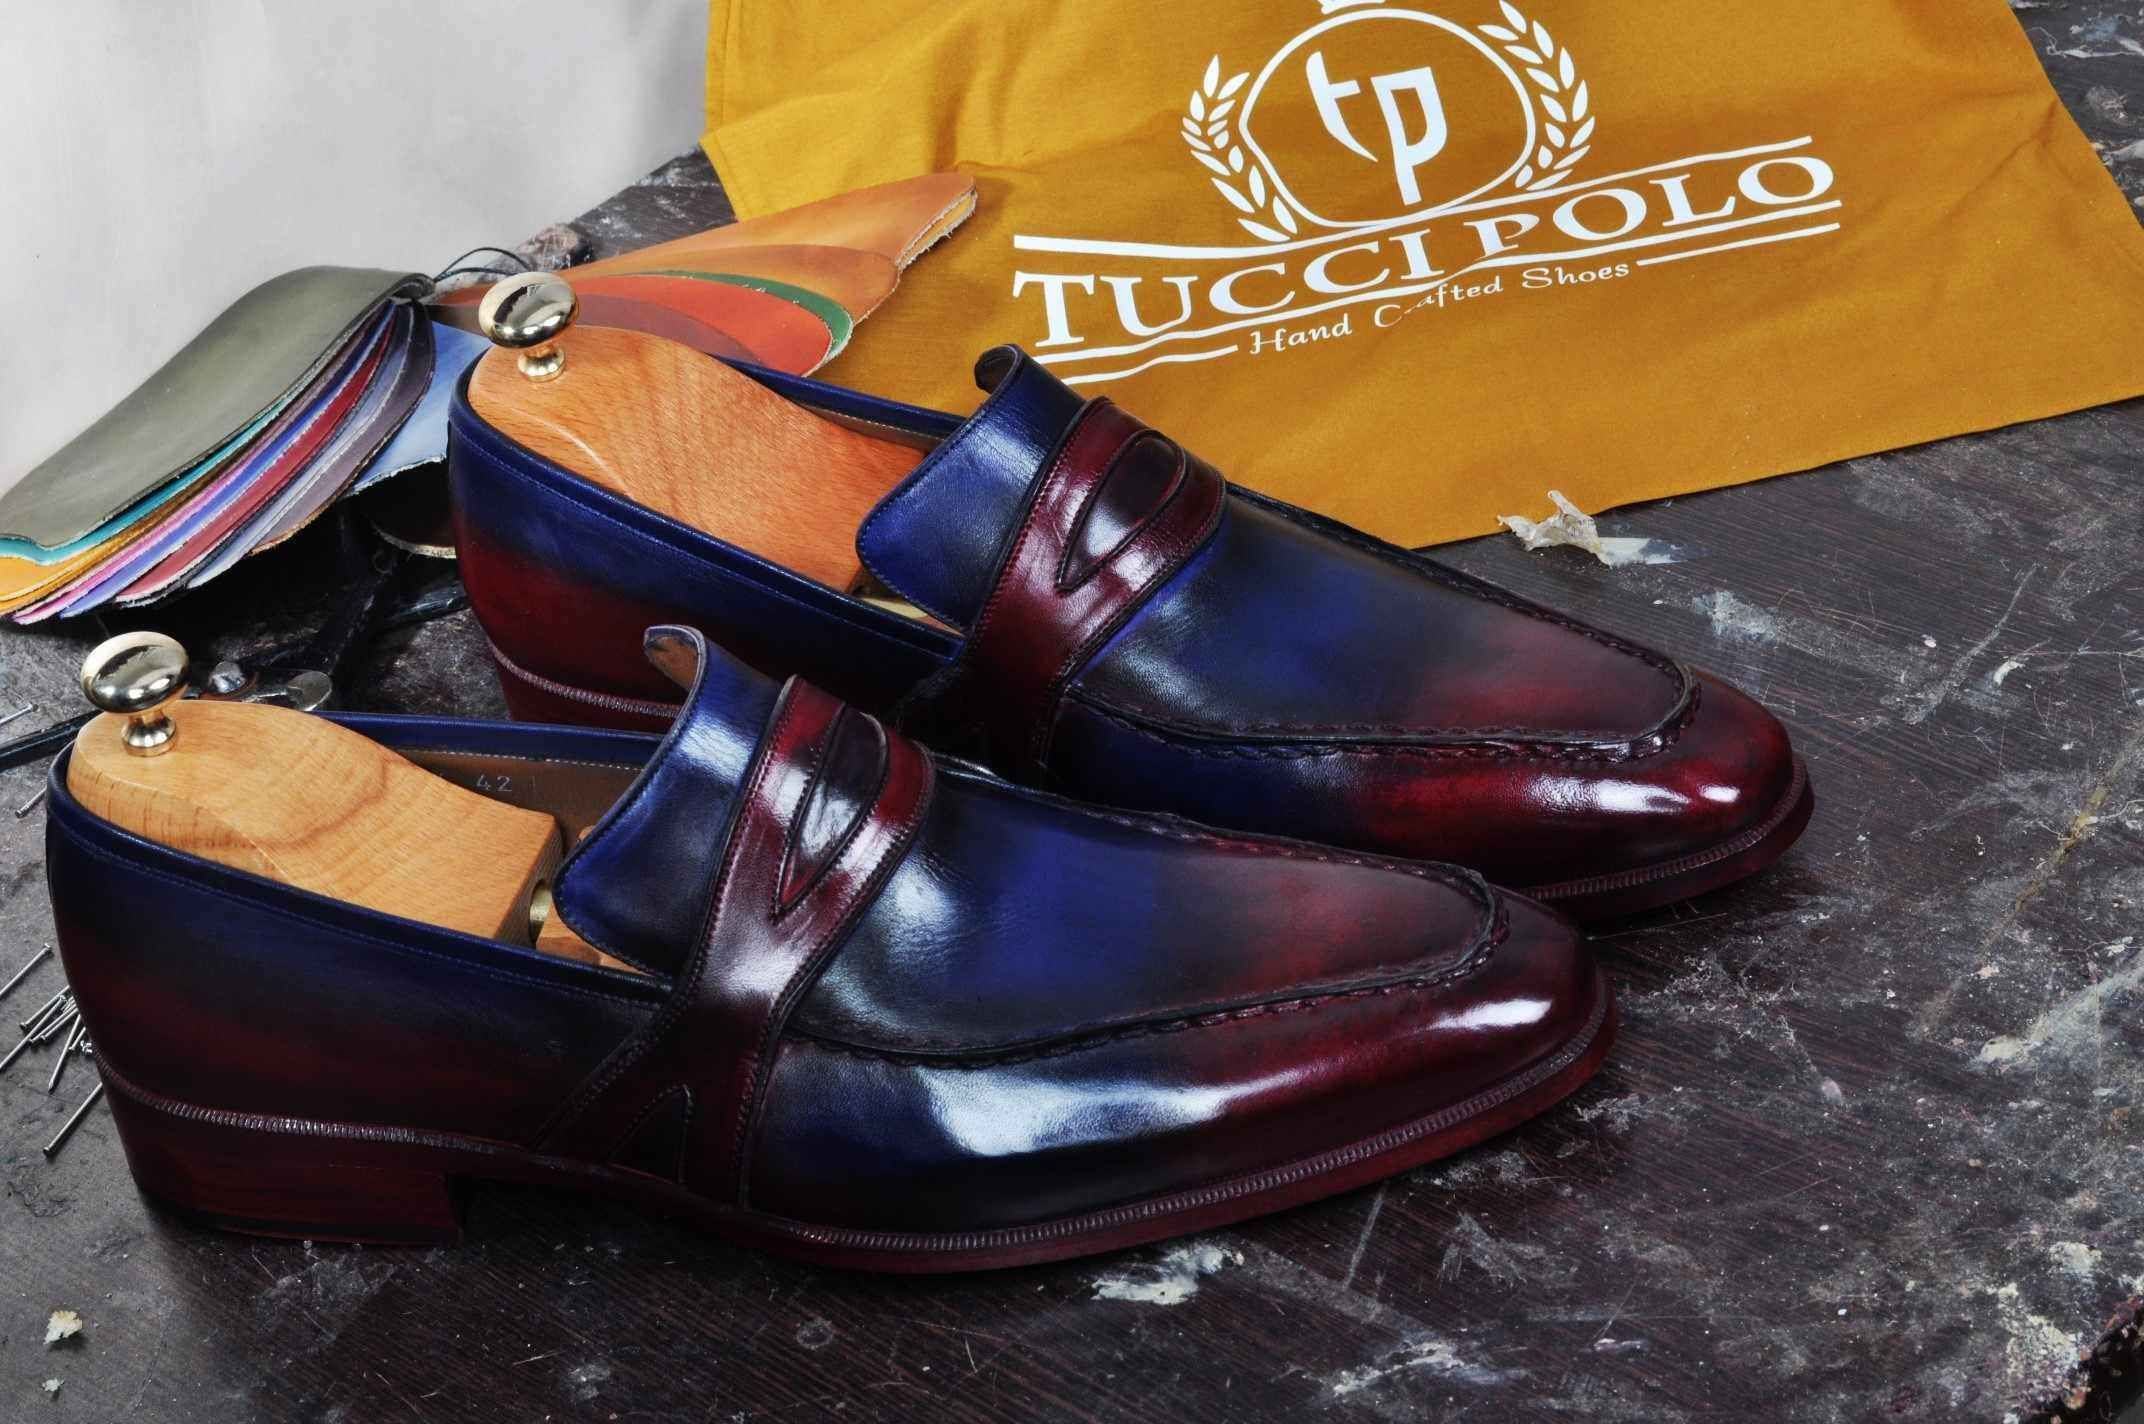 Mens Luxury Shoes Tuccipolo Mens Handmade Italian Leather Luxury